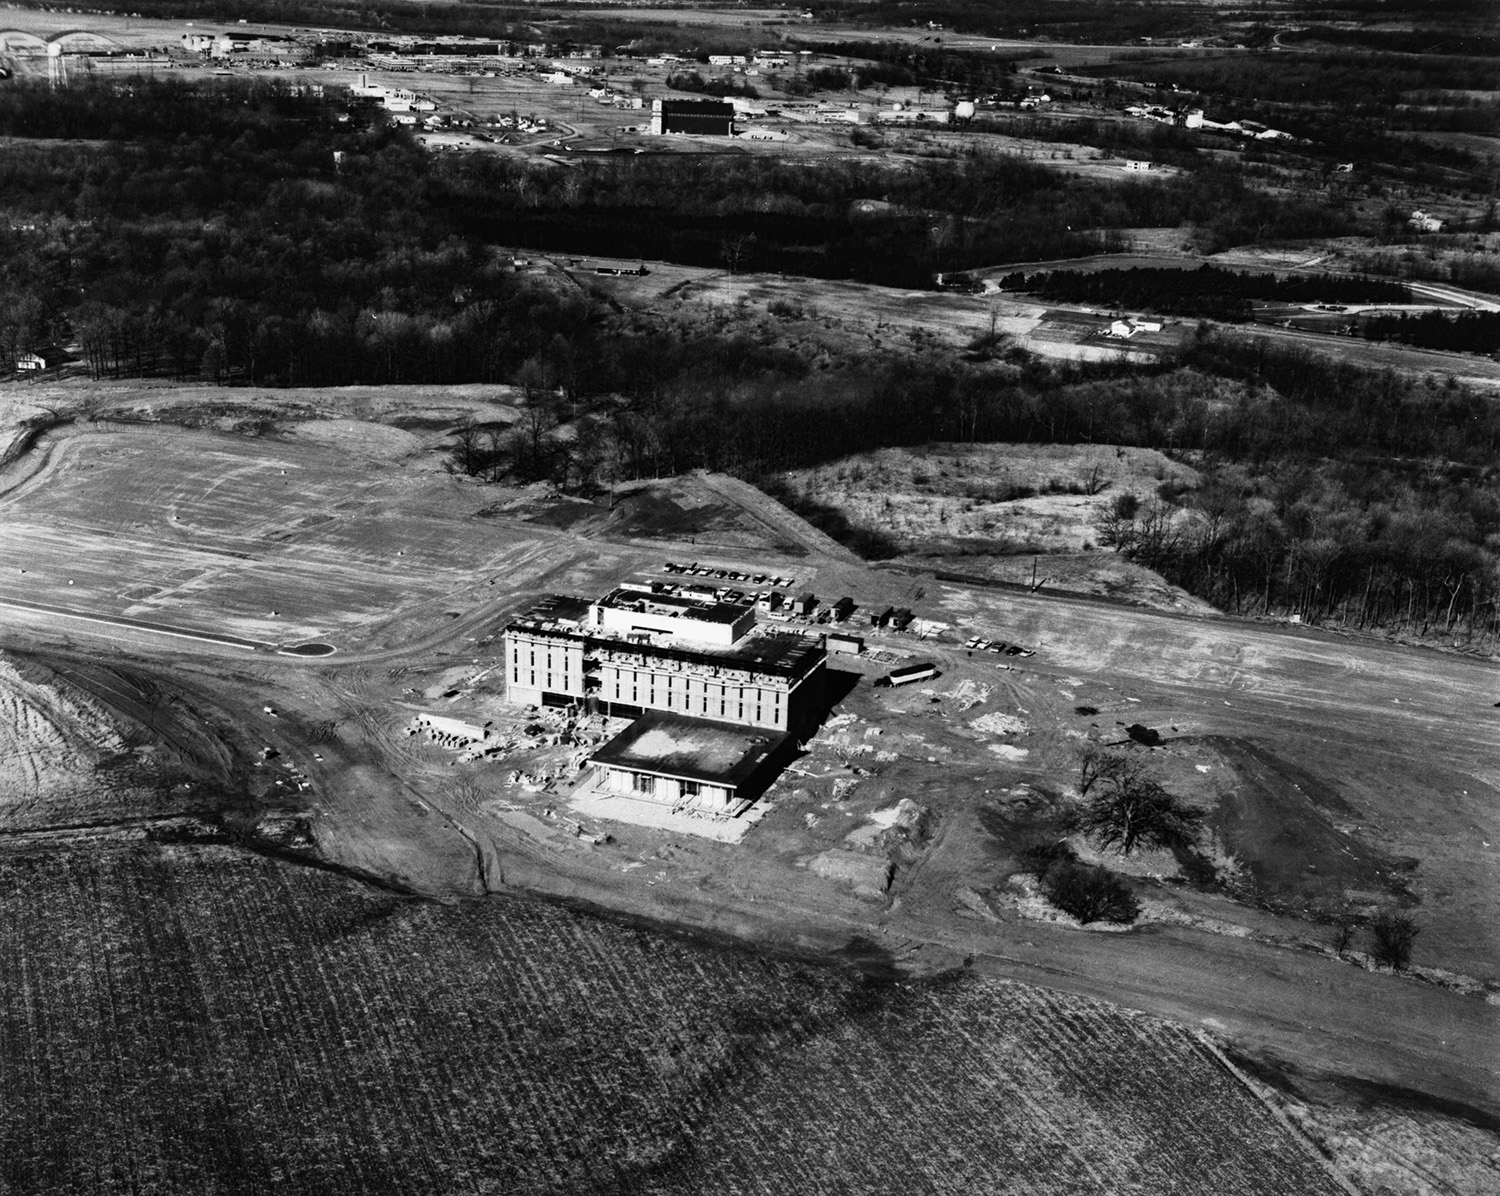 Allyn Hall, Wright State's first building, in the middle of a cornfield in 1968.